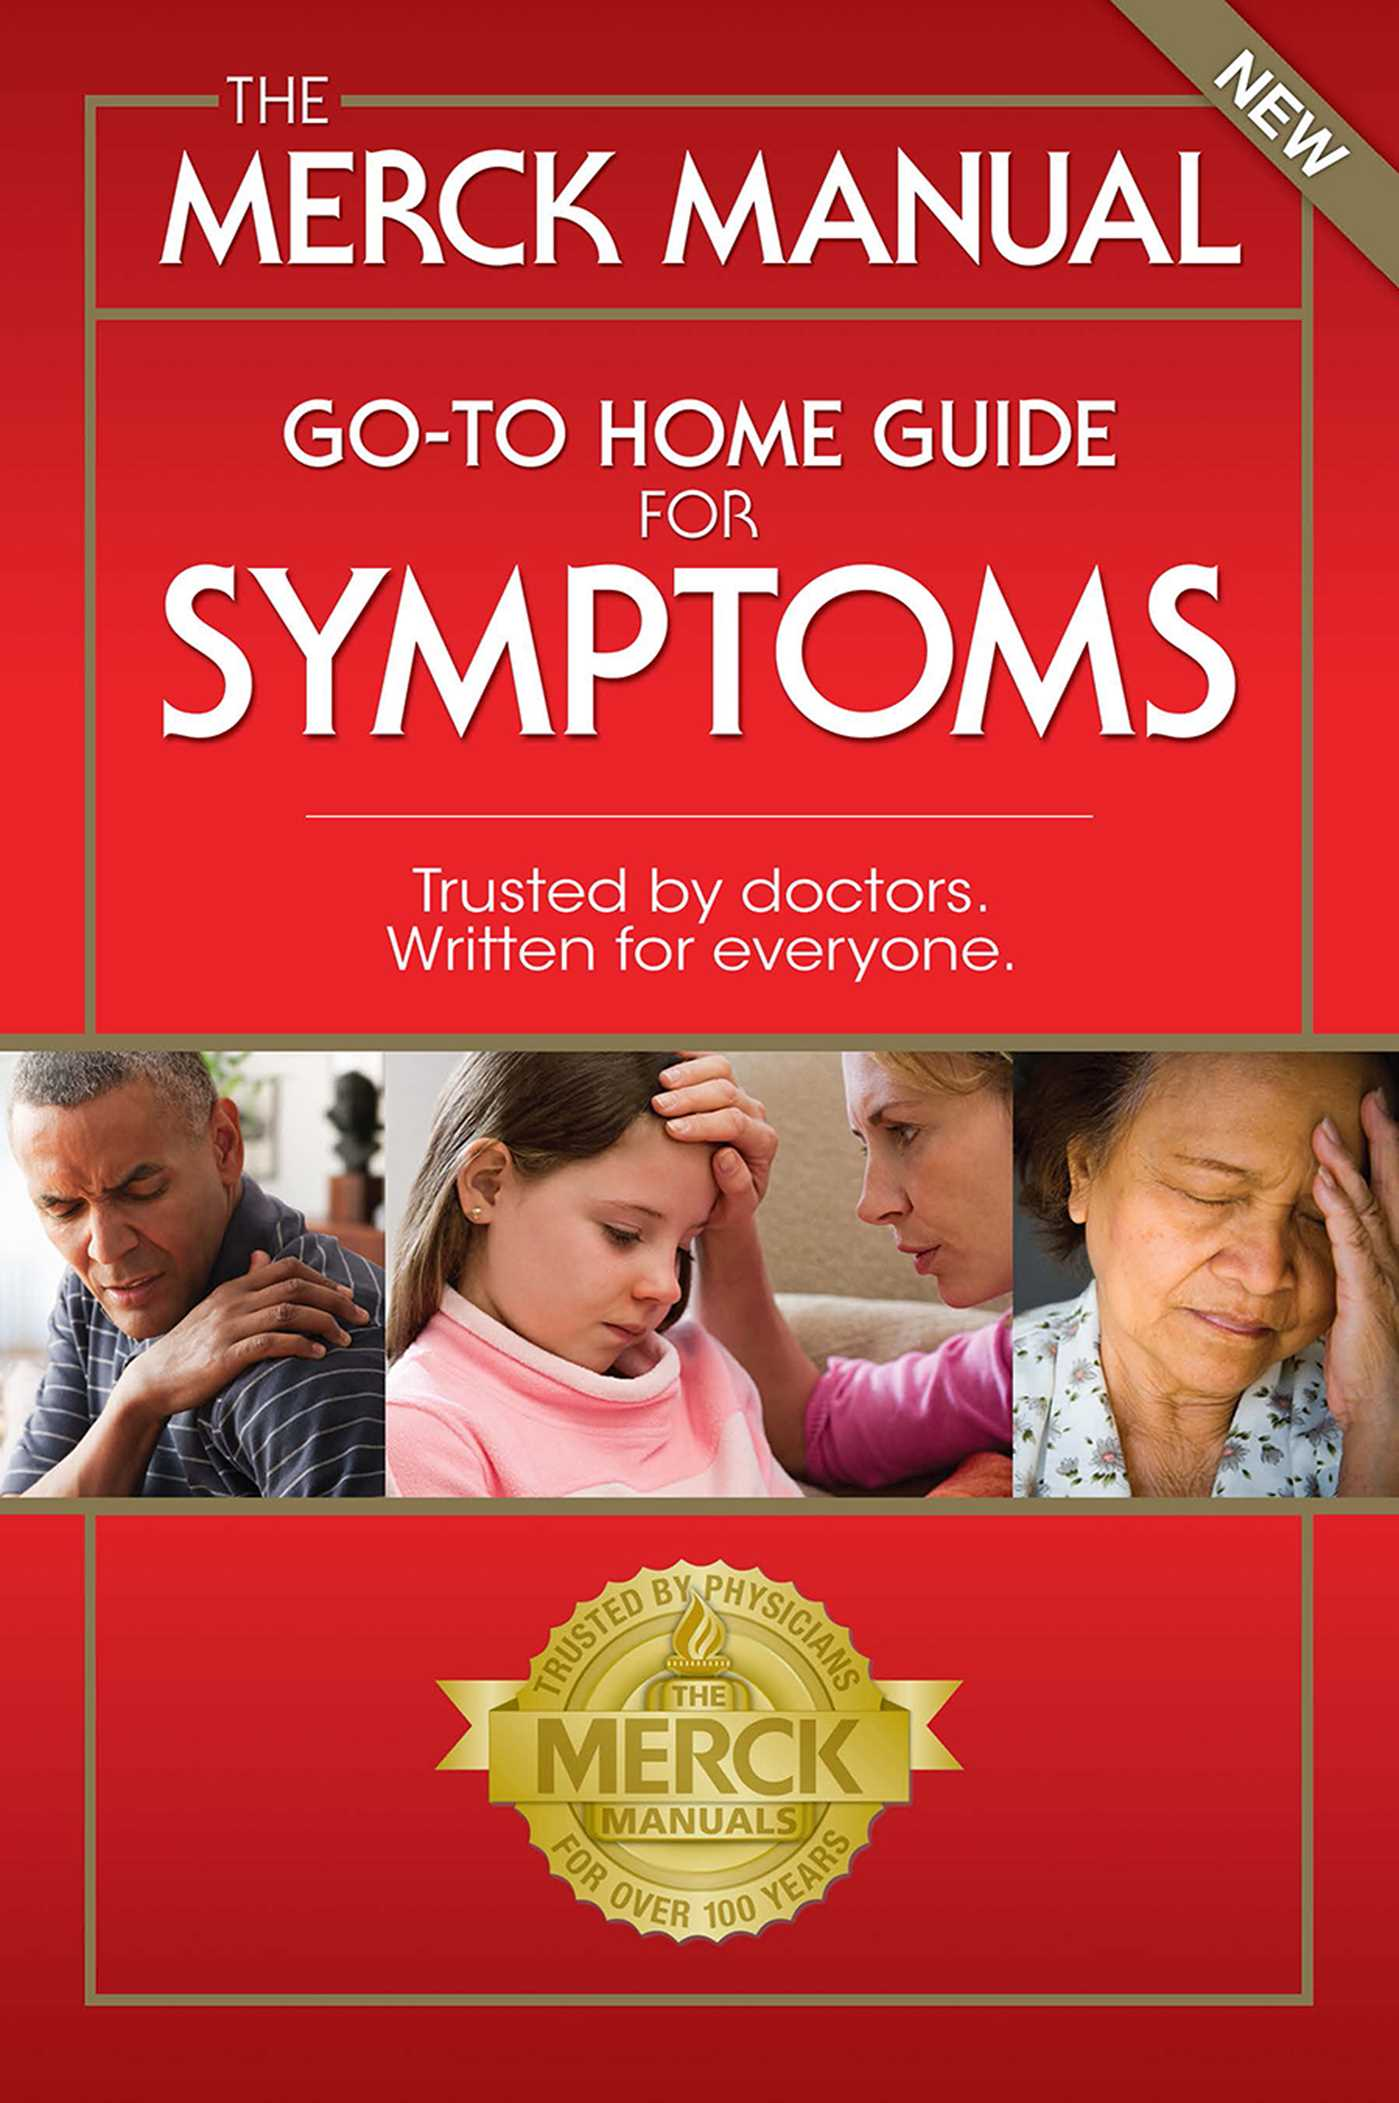 The merck manual go to home guide for symptoms 9780911910582 hr